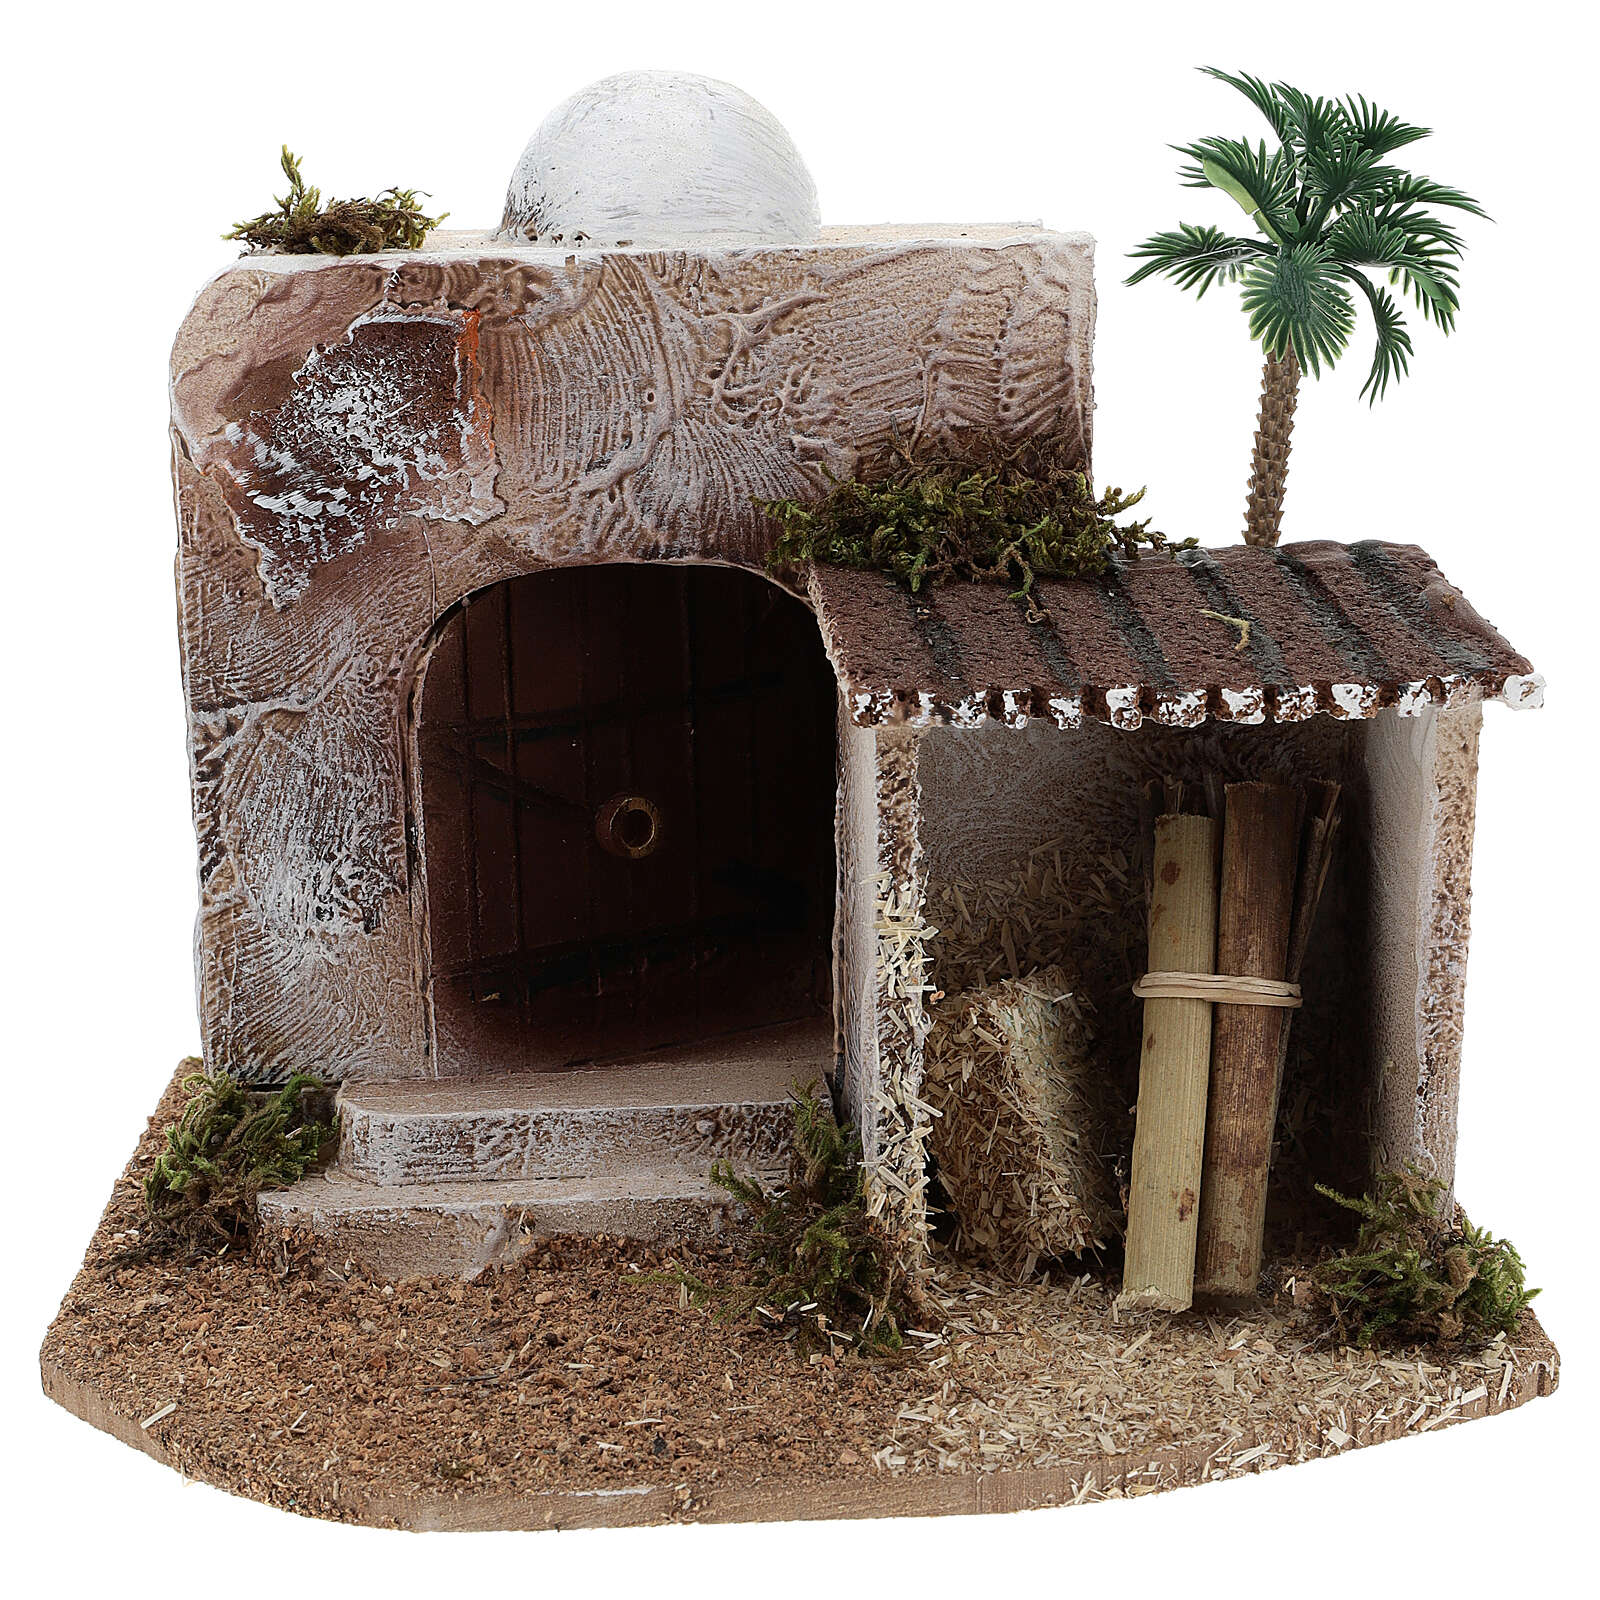 House with dome Arabian style 15x20x15 cm 4